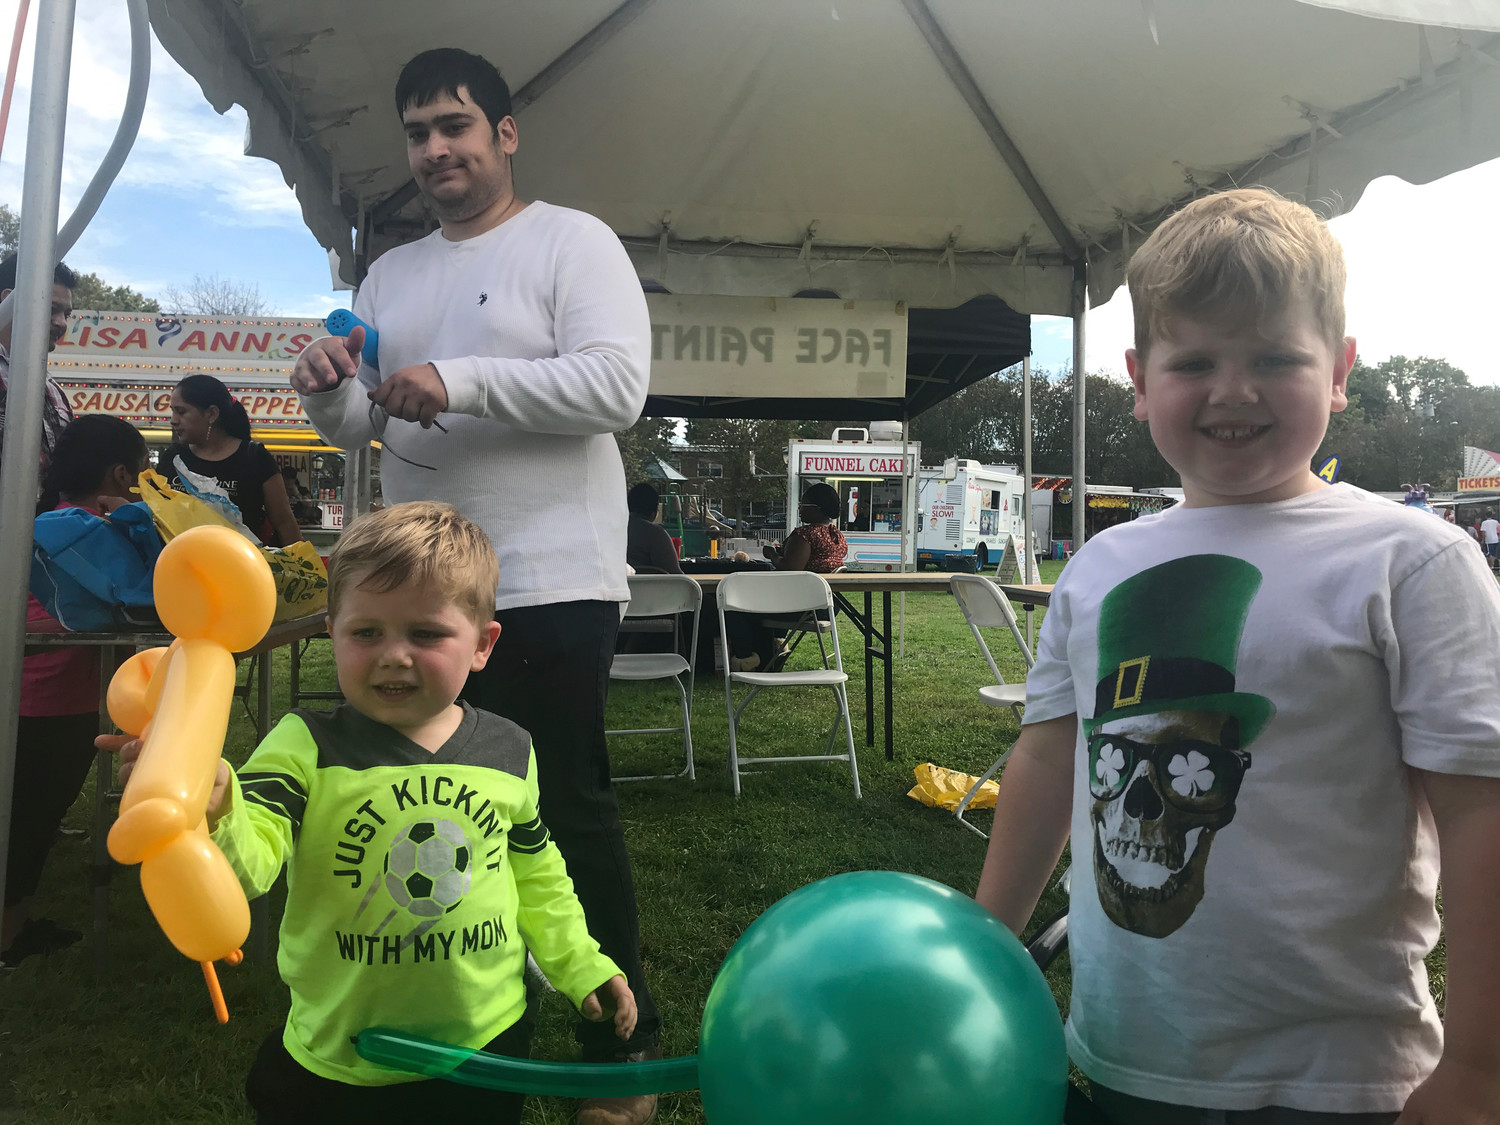 The brothers Labasi — Nicholas, 3, and Santino, 4, — had fun with balloons at the fair on Oct. 7.